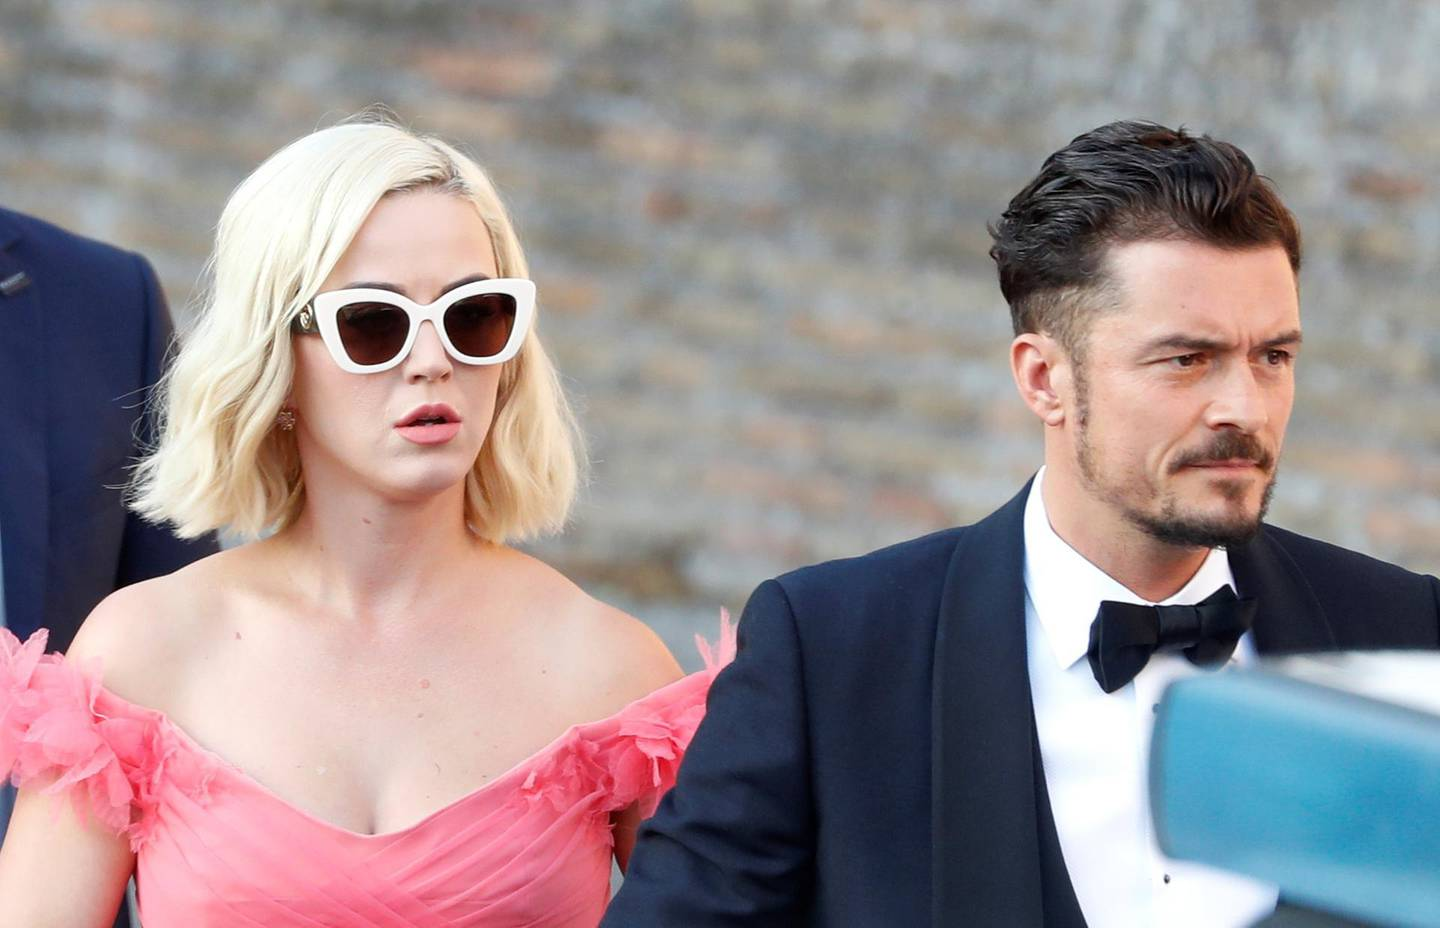 Singer Kate Perry and actor Orlando Bloom arrive to attend the wedding of fashion designer Misha Nonoo at Villa Aurelia in Rome, Italy, September 20, 2019. REUTERS/Yara Nardi